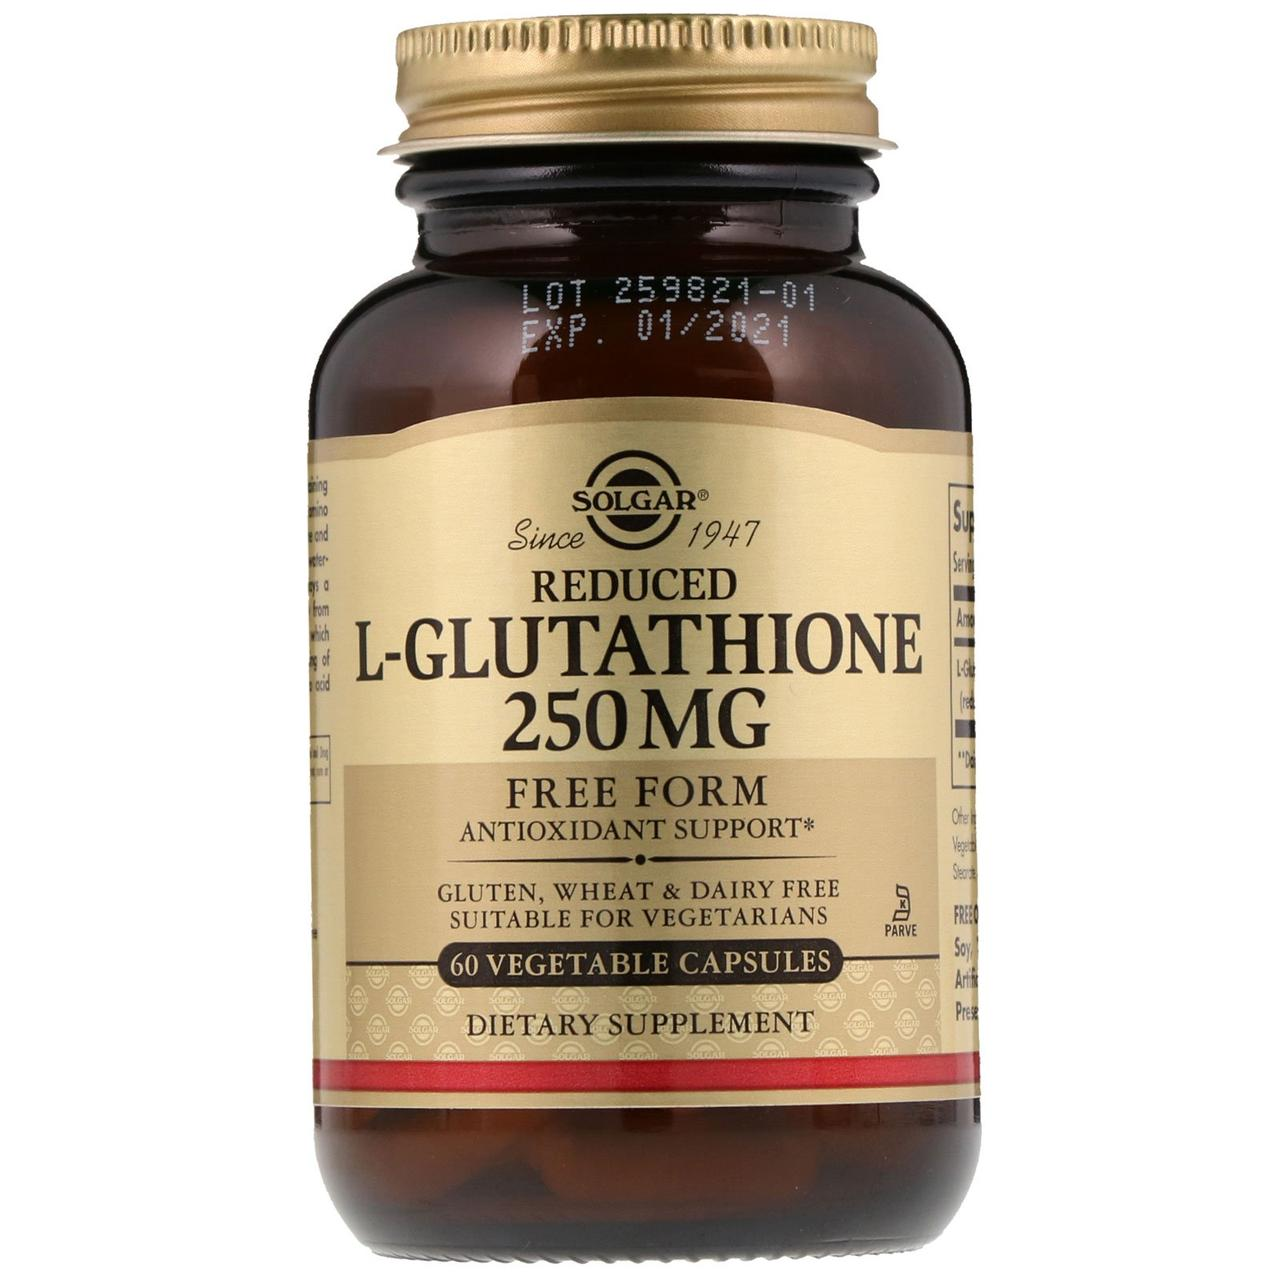 Глутатион, Reduced L-Glutathione, Solgar, 250 мг, 60 капсул